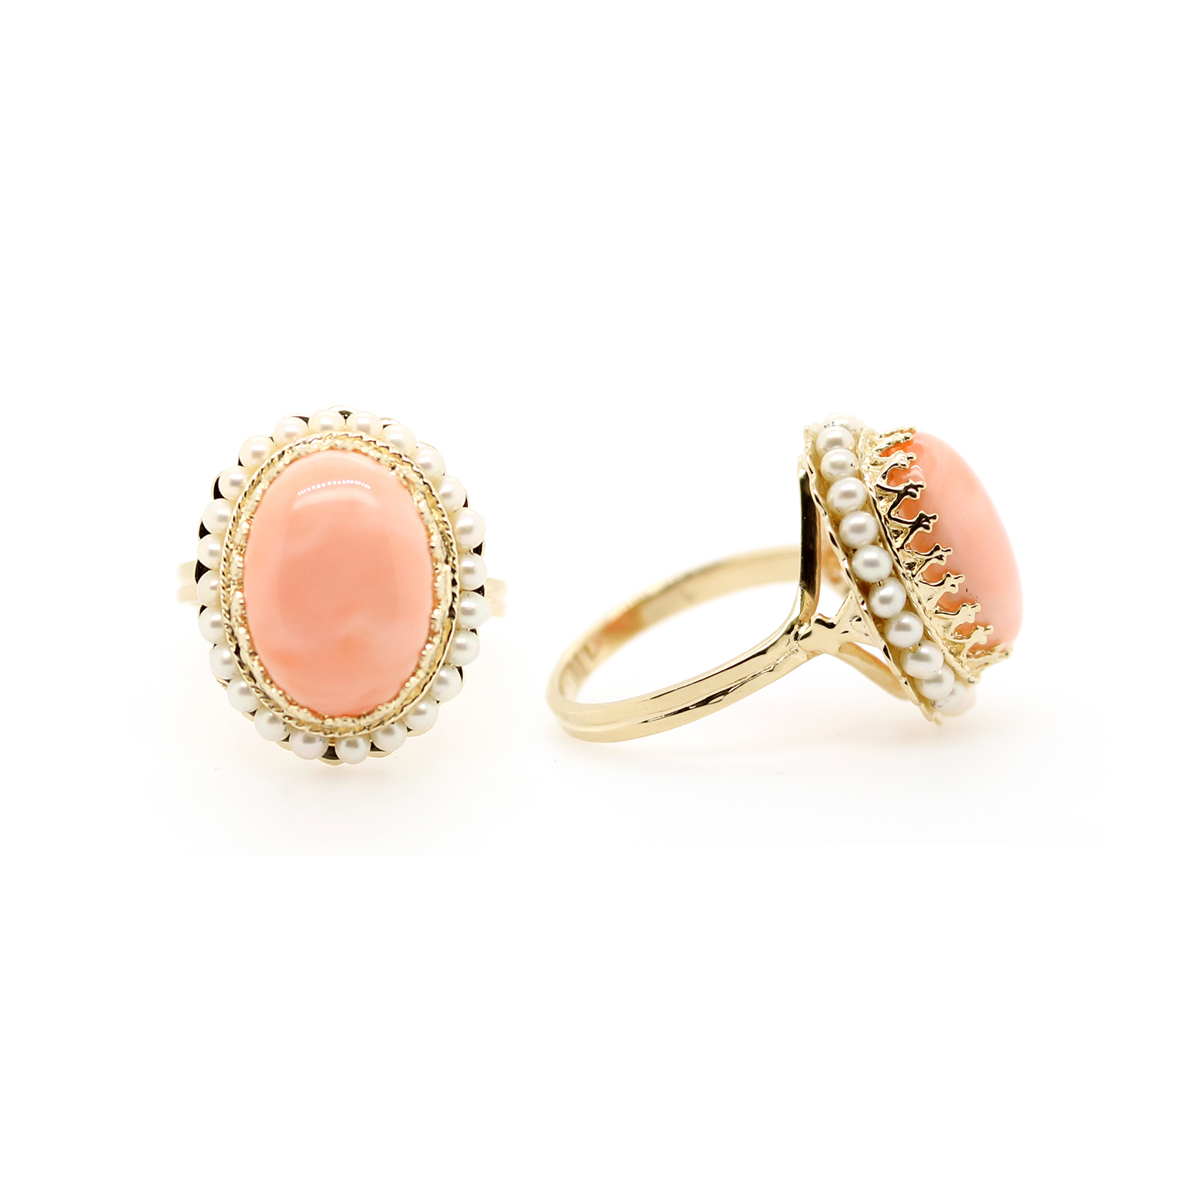 Vintage 14 Karat Yellow Gold Angel Skin Coral and Freshwater Pearl Ring